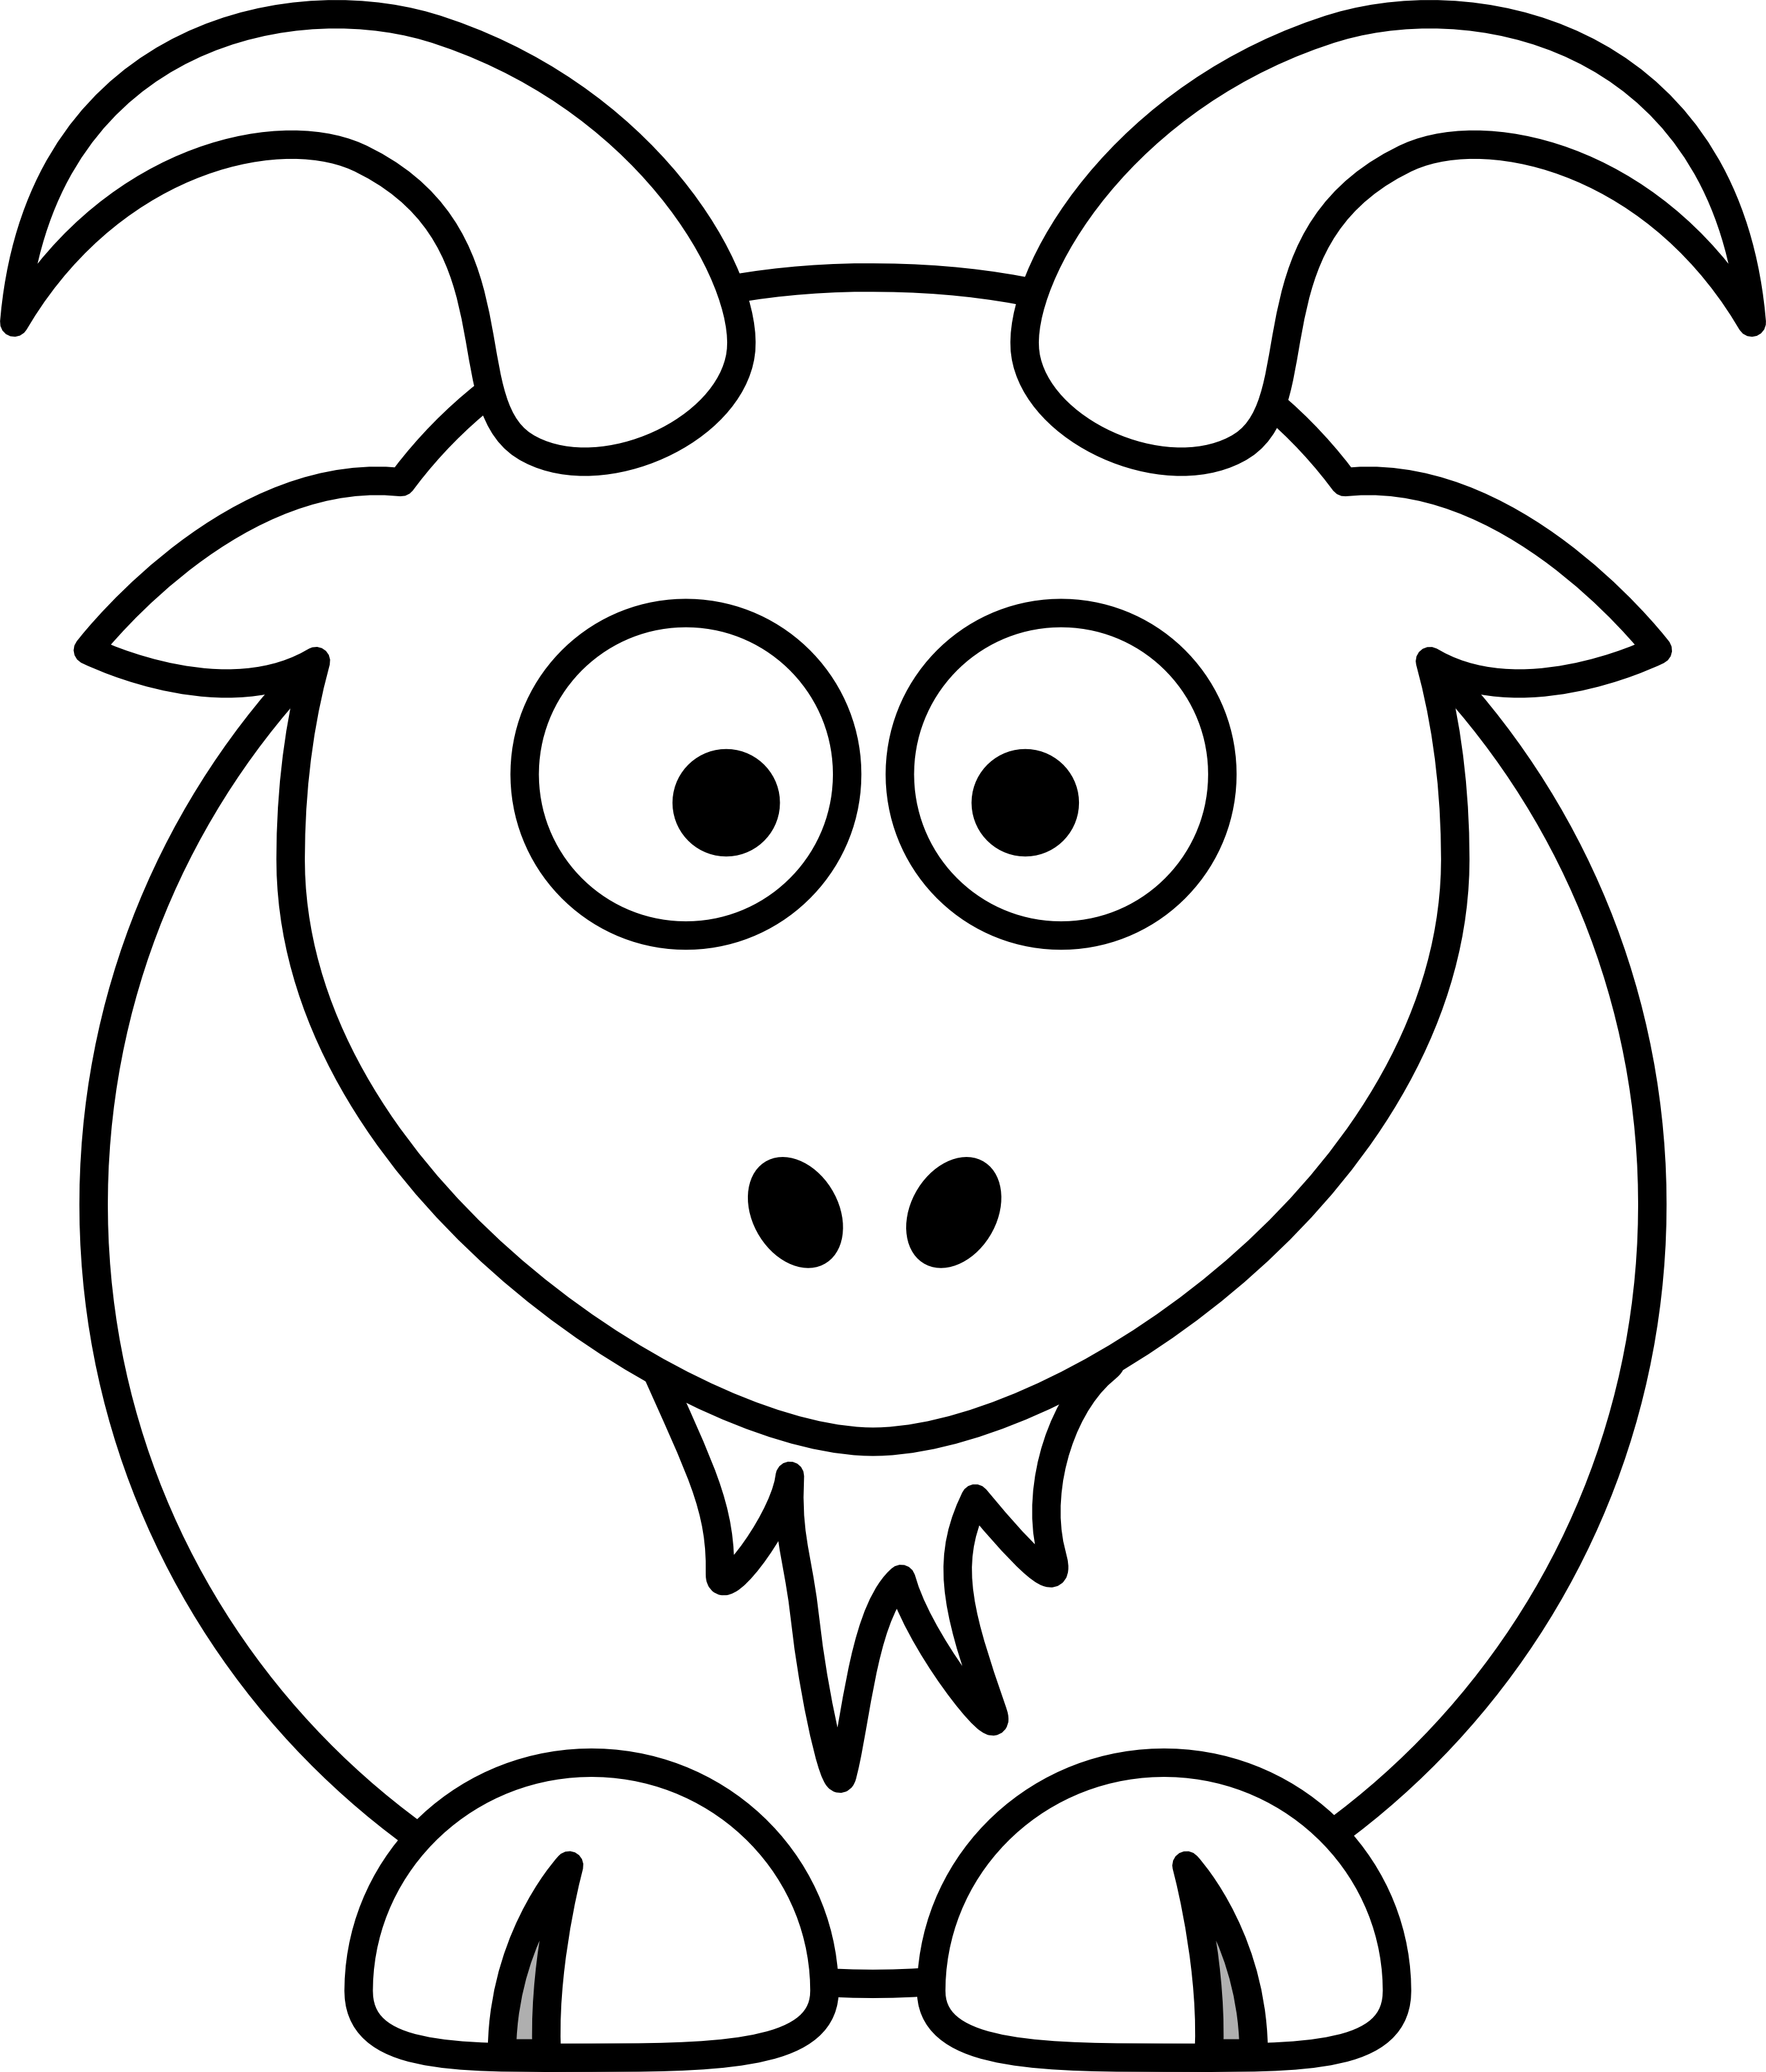 Goat Clipart Black And White Clipart Pan-Goat Clipart Black And White Clipart Panda Free Clipart Images-10